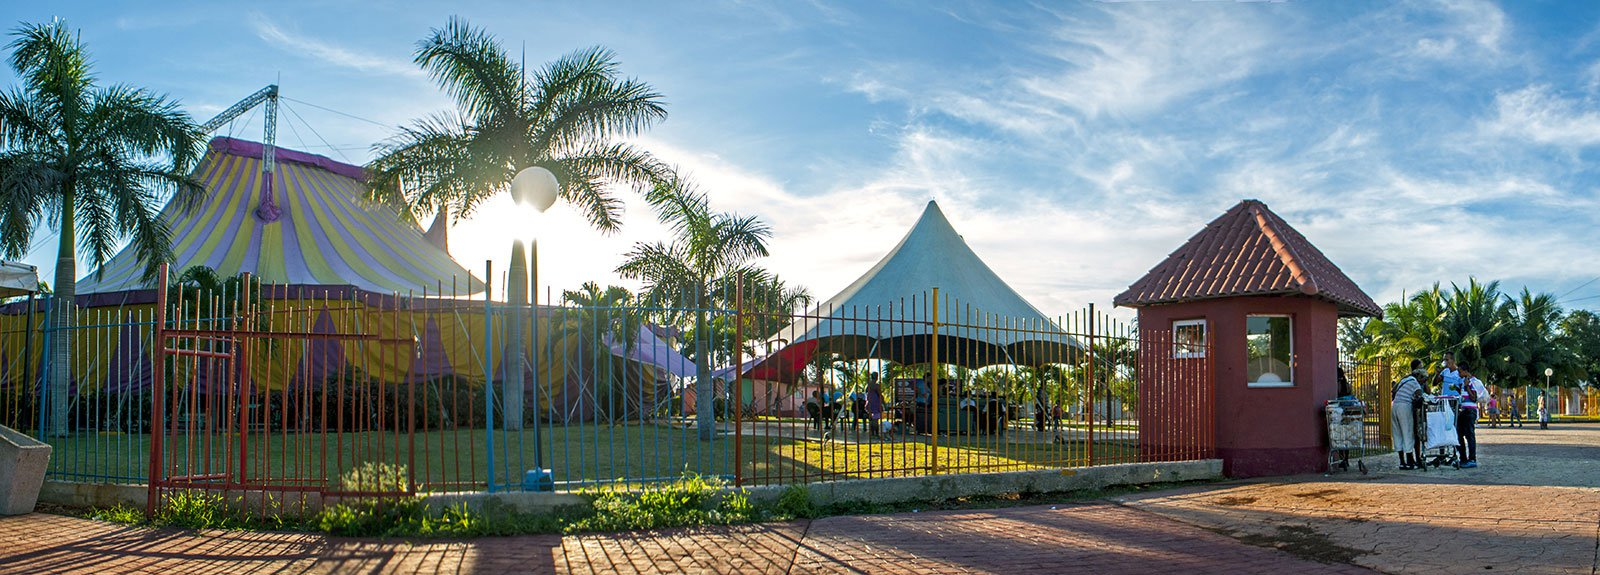 View of the yellow and violet place of the circus